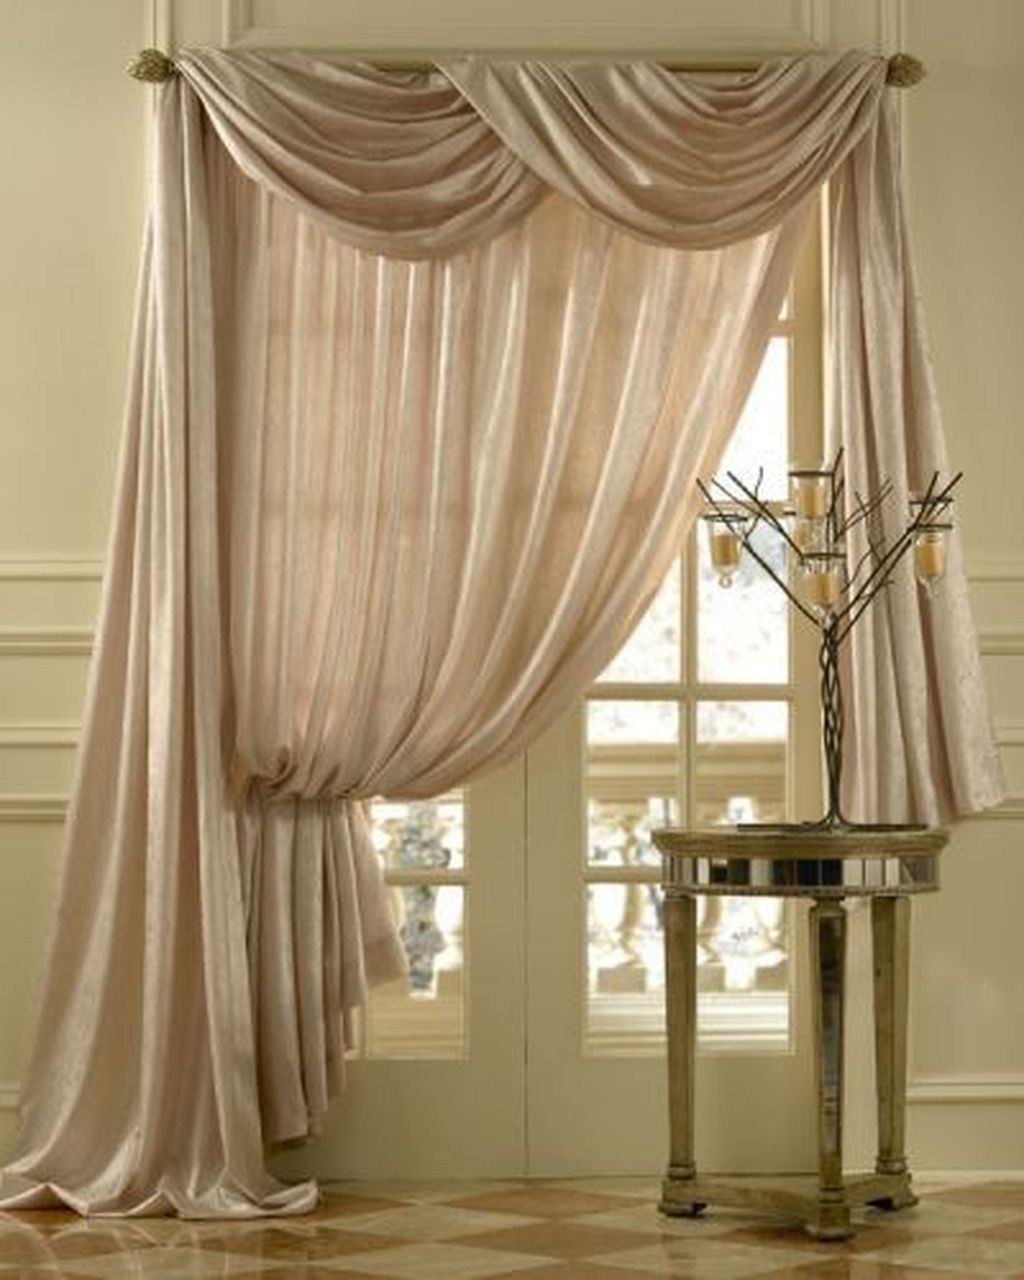 Beautiful Home Curtain Ideas For Your Interior Design To Looks